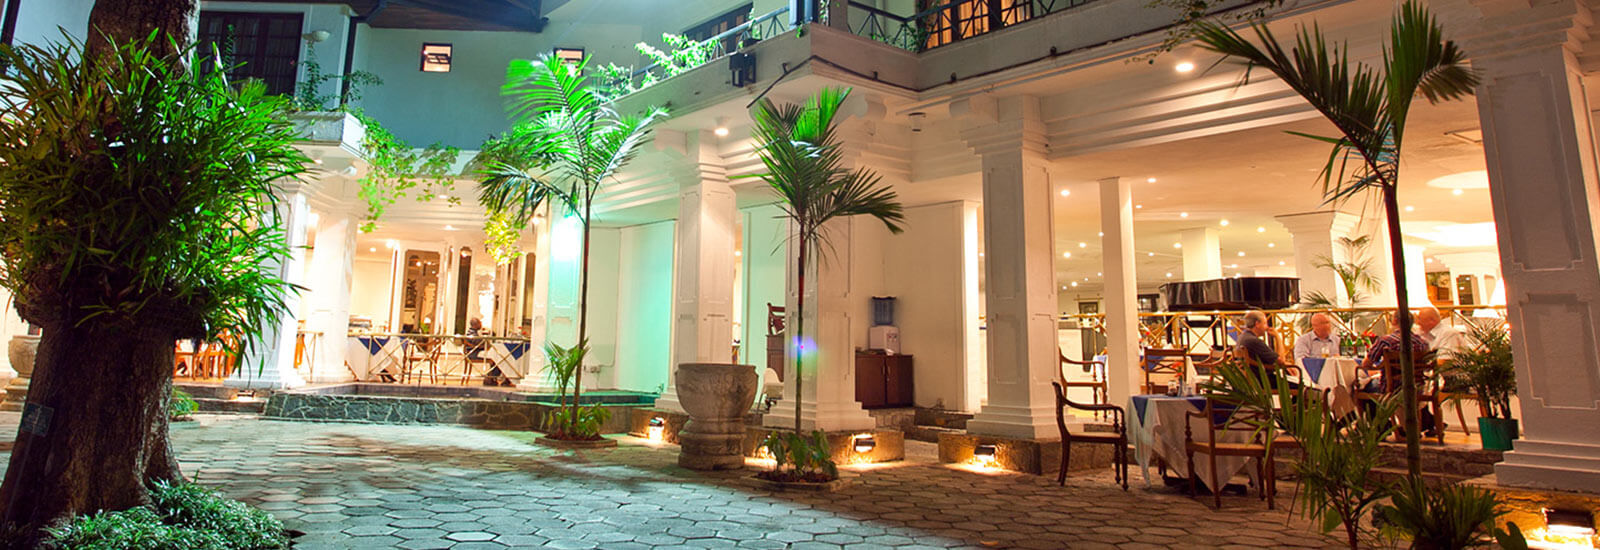 Entrance to Mahaweli Reach Hotel at Night